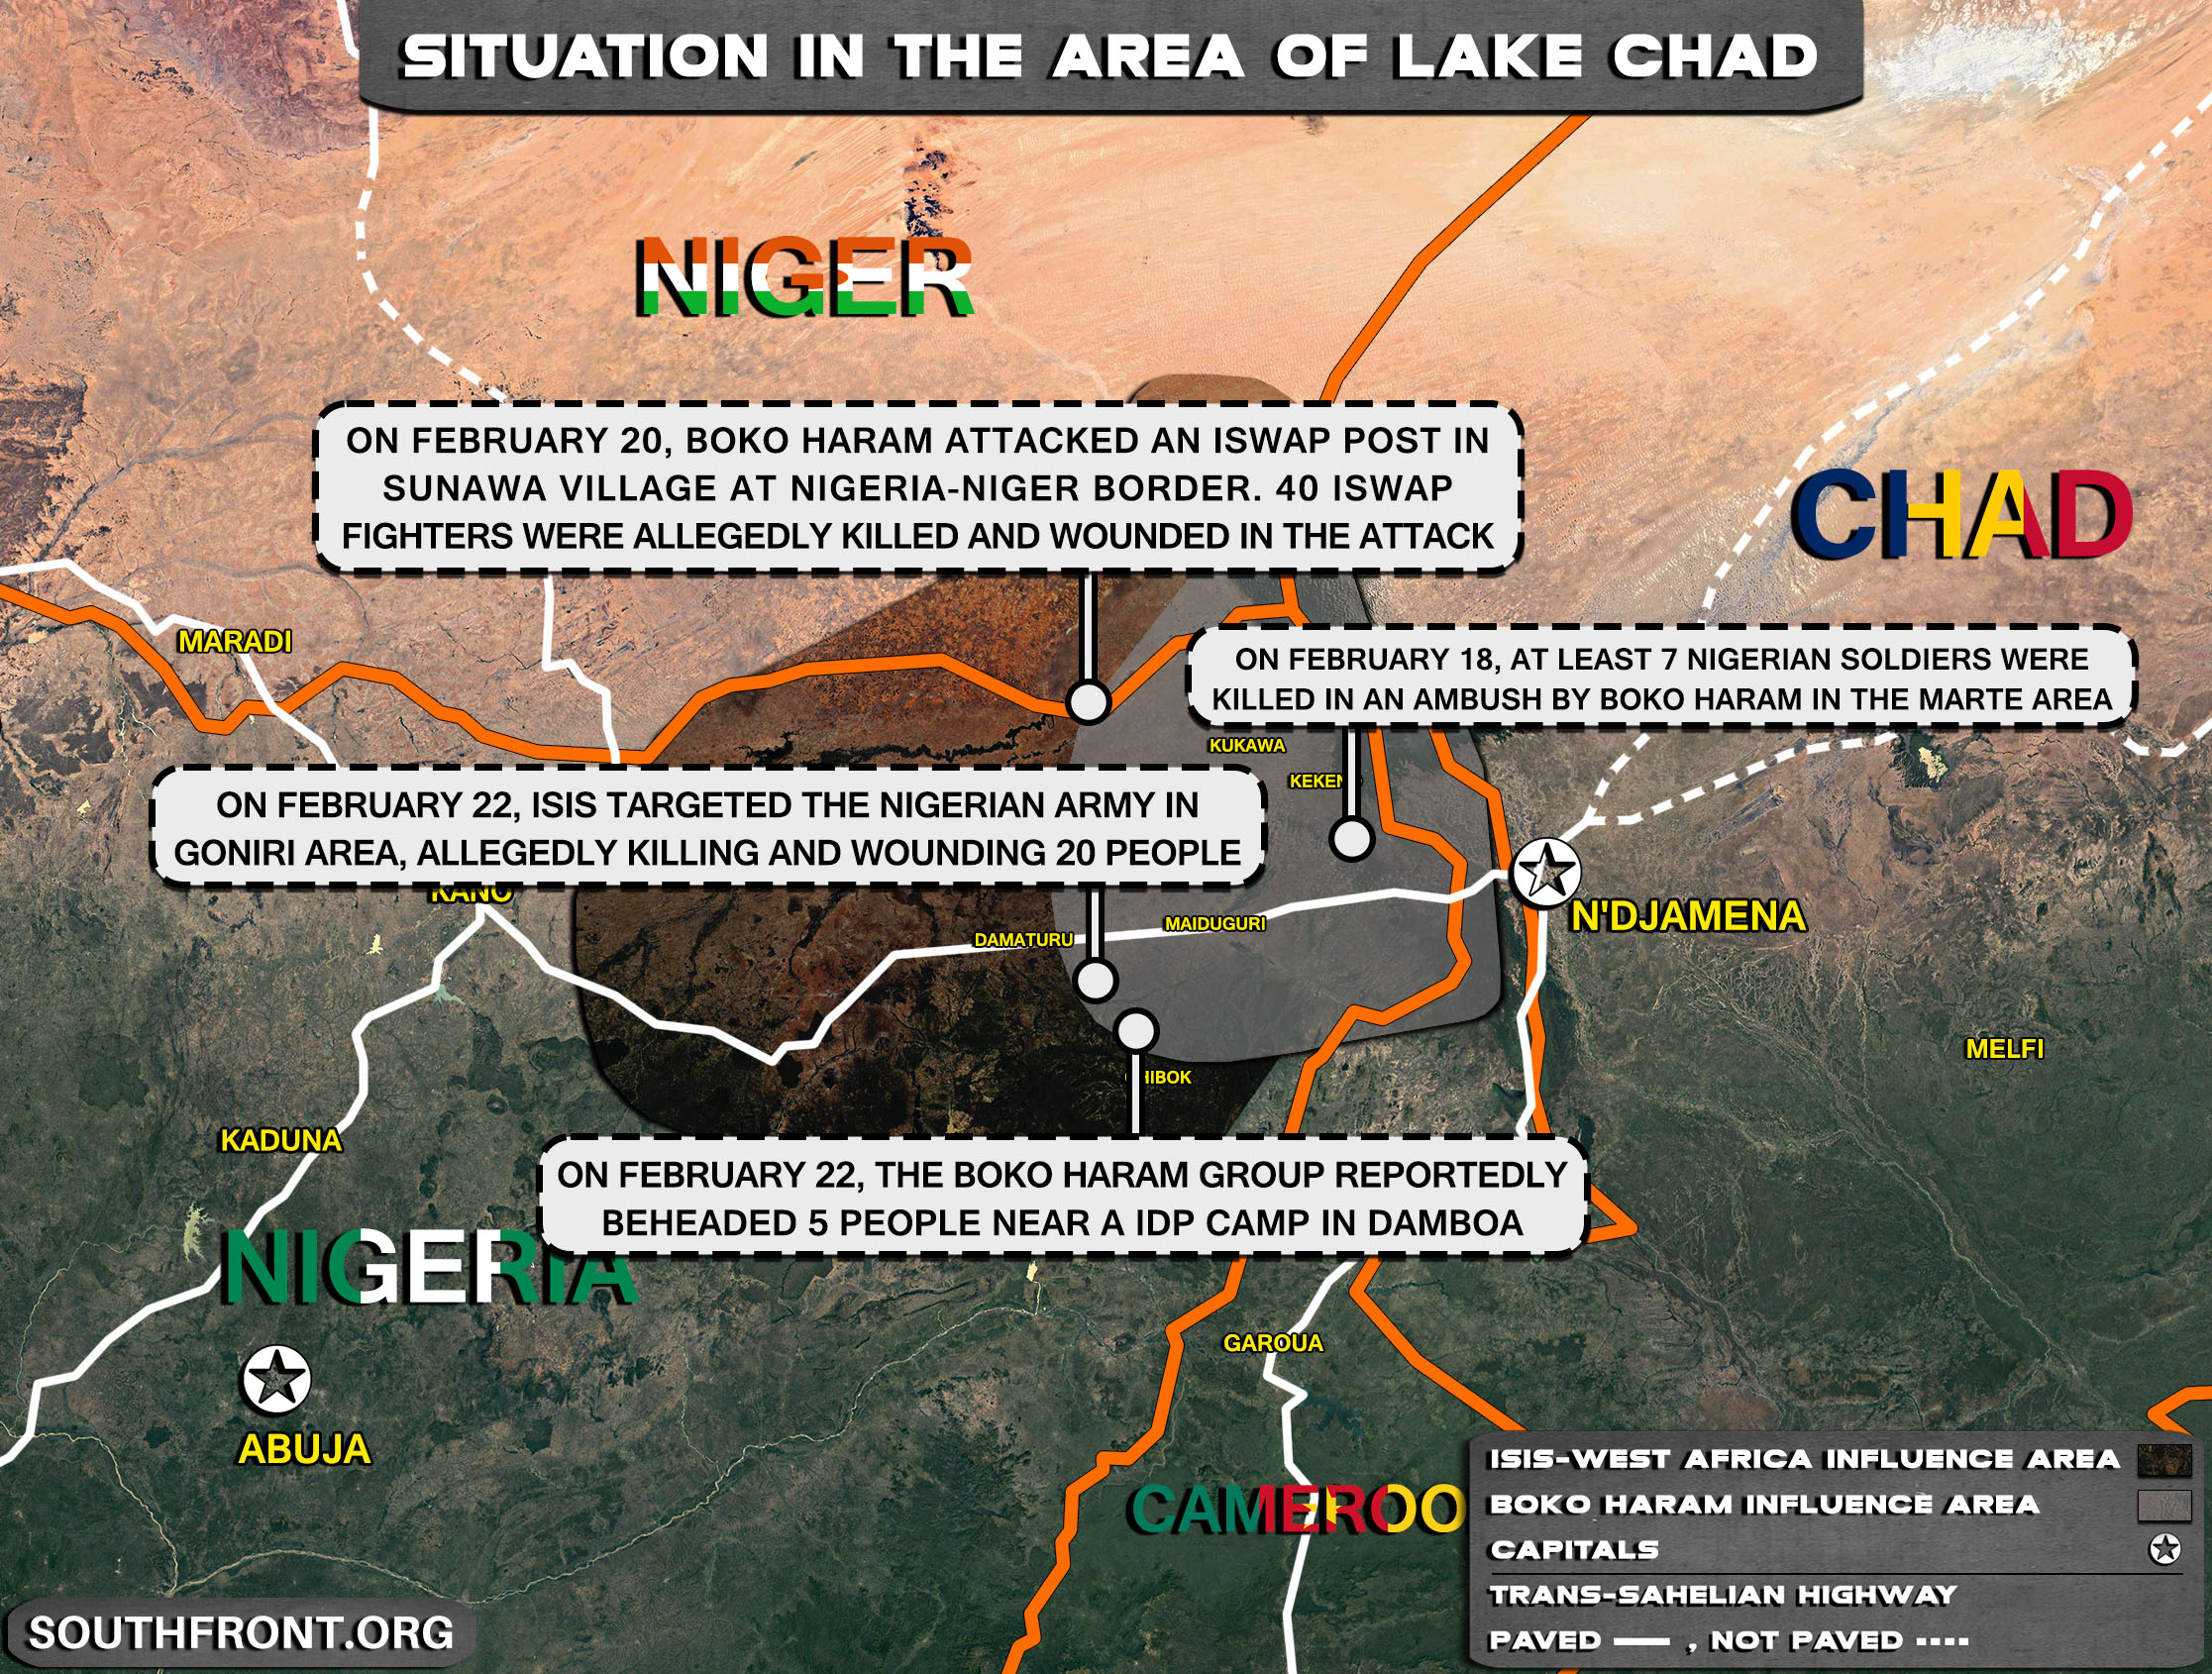 Boko Haram Clashes With ISIS In West Africa For Superiority Around Lake Chad